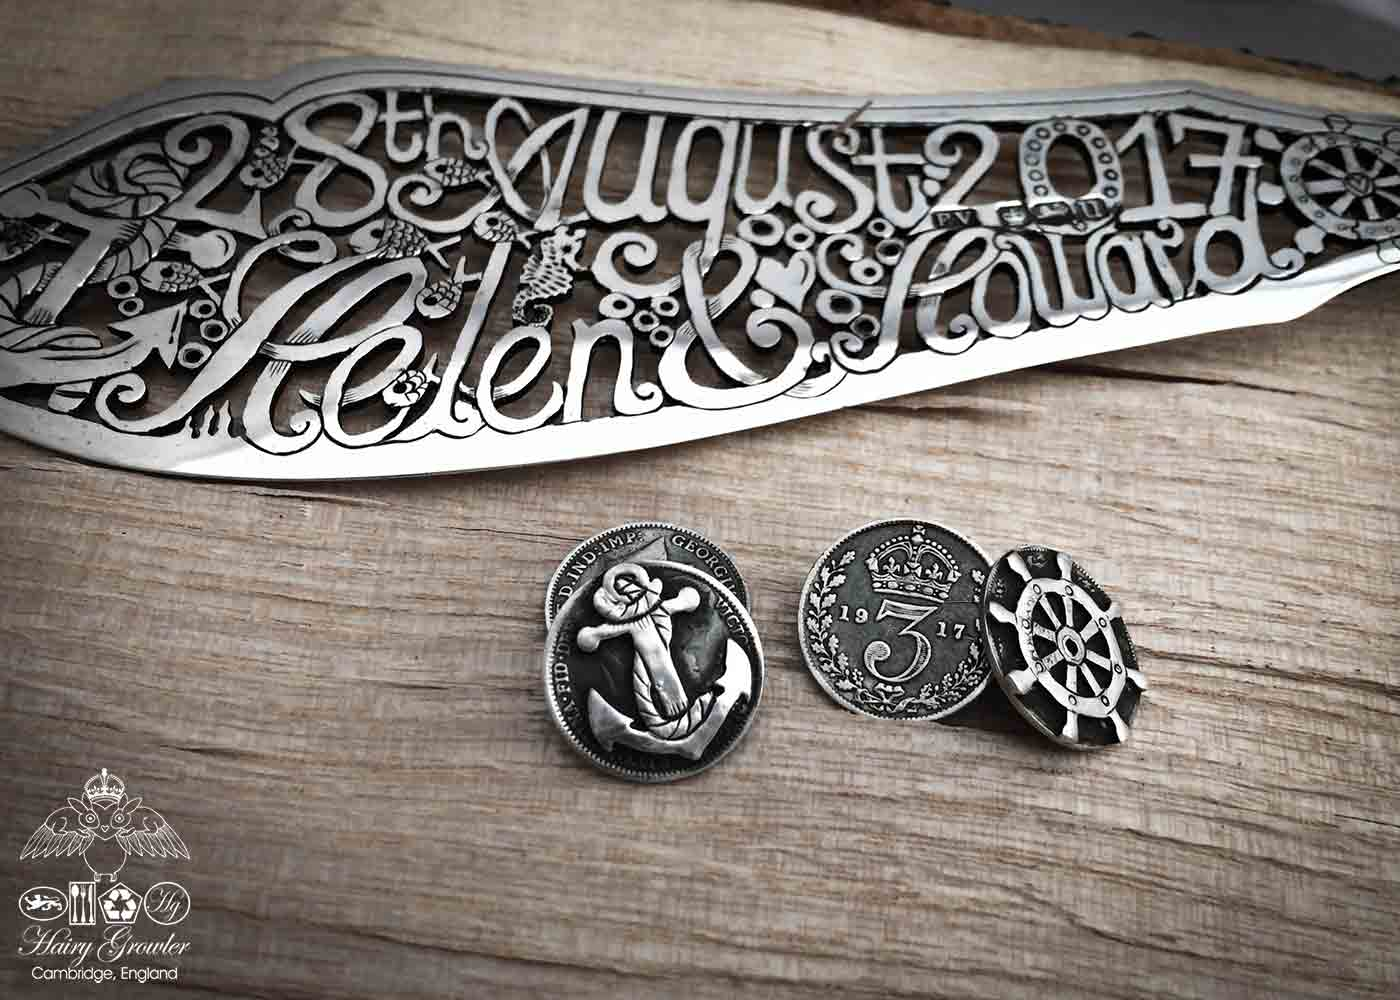 Ethical wedding cufflinks in the making. Eco-conscious, eco-friendly, green, artisan wedding cake knife created and recycled from an antique silver fish knife and silver coins